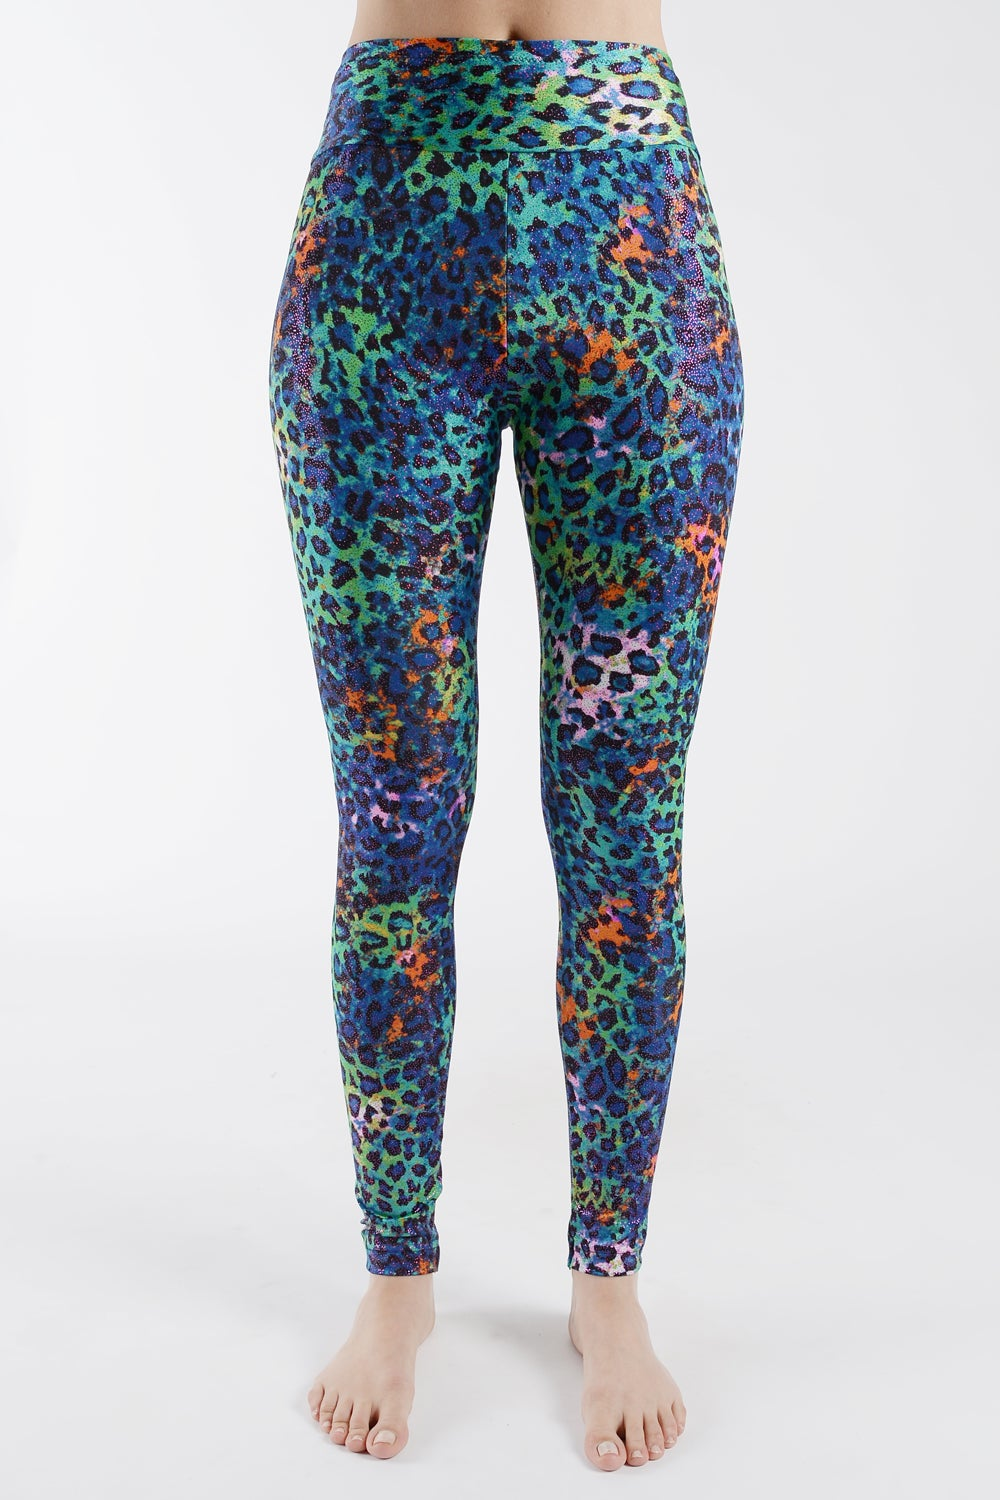 Image of Marine Leopard Print High Waisted Leggings